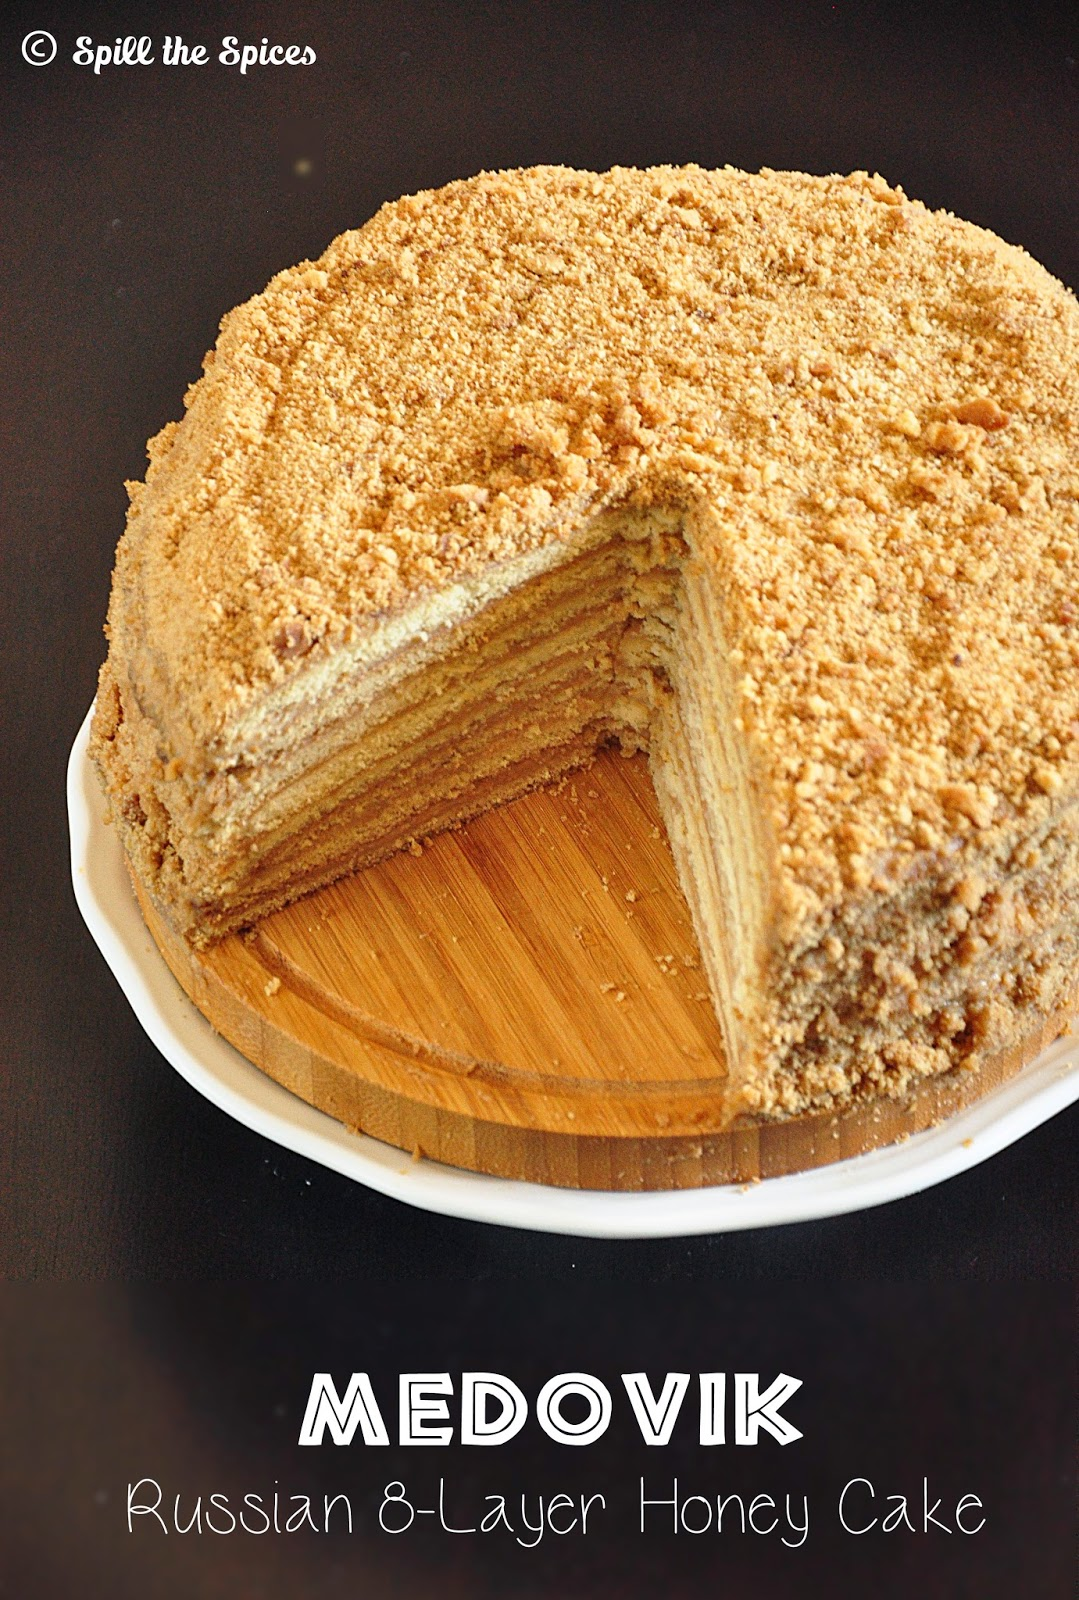 Medovik | Russian Honey Cake | Spill the Spices